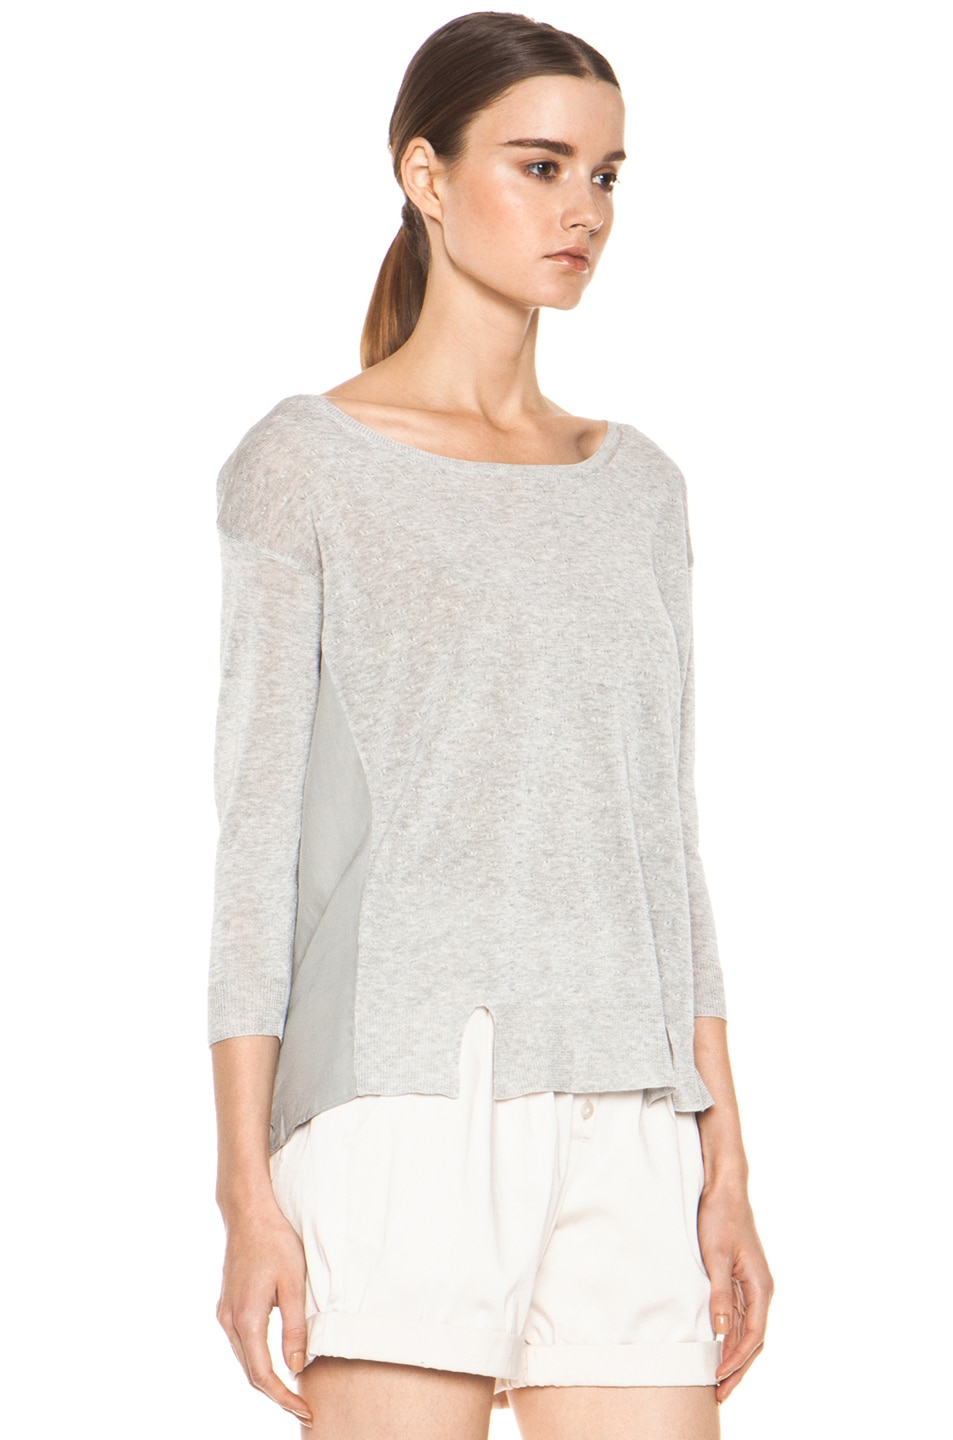 Image 3 of Girl. by Band of Outsiders Malibu Basic Sweater in Grey Heather